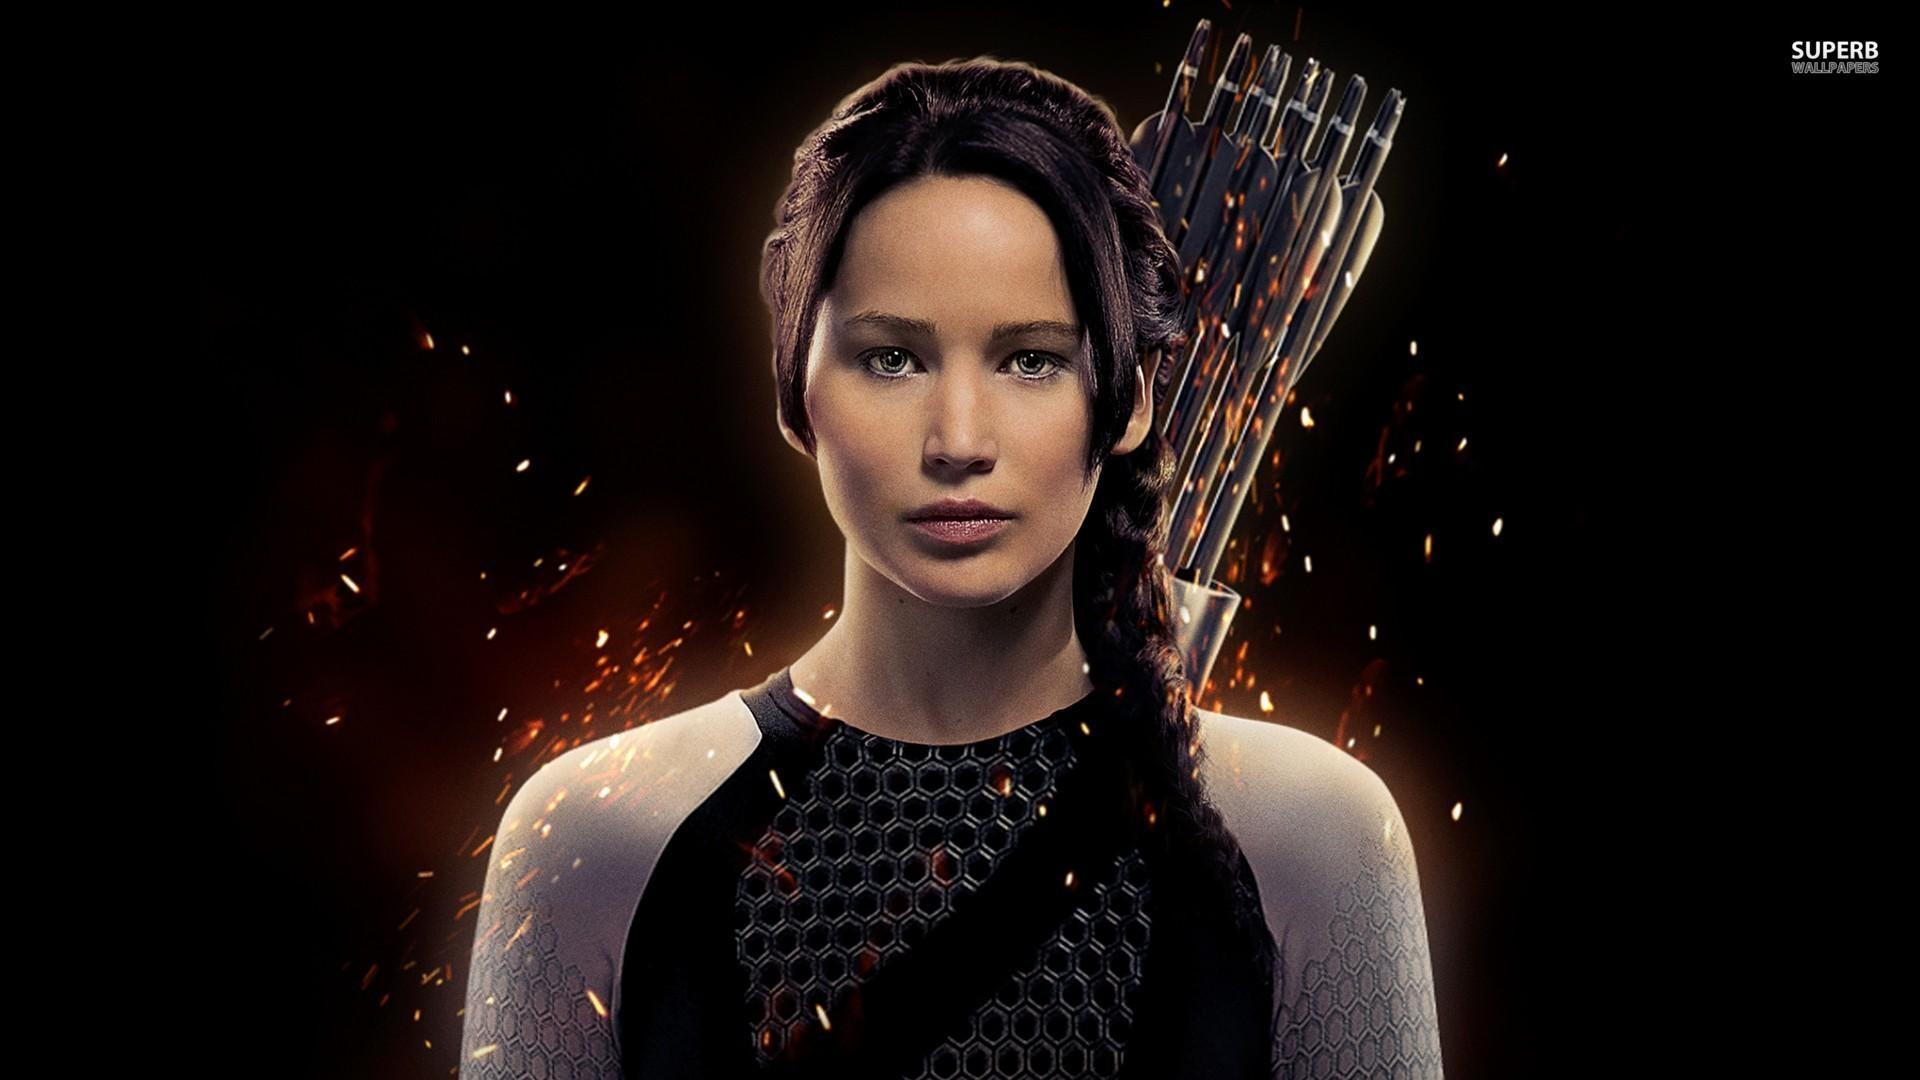 Would you rather... have Katniss's eyes, ears, or hair?